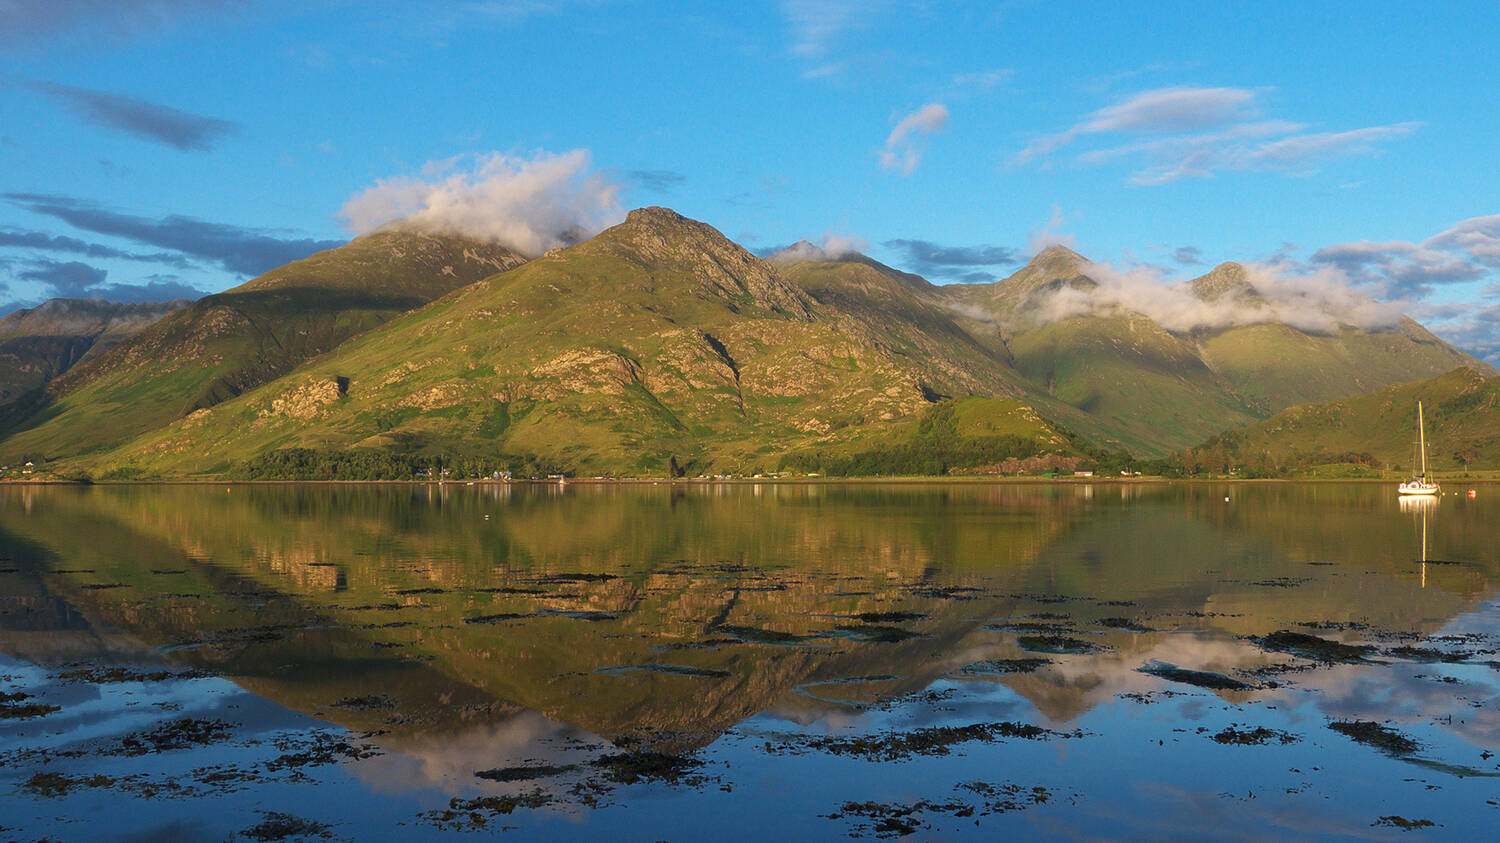 A clear reflection in Loch Duich beneath the iconic Five Sisters mountains of Kintail